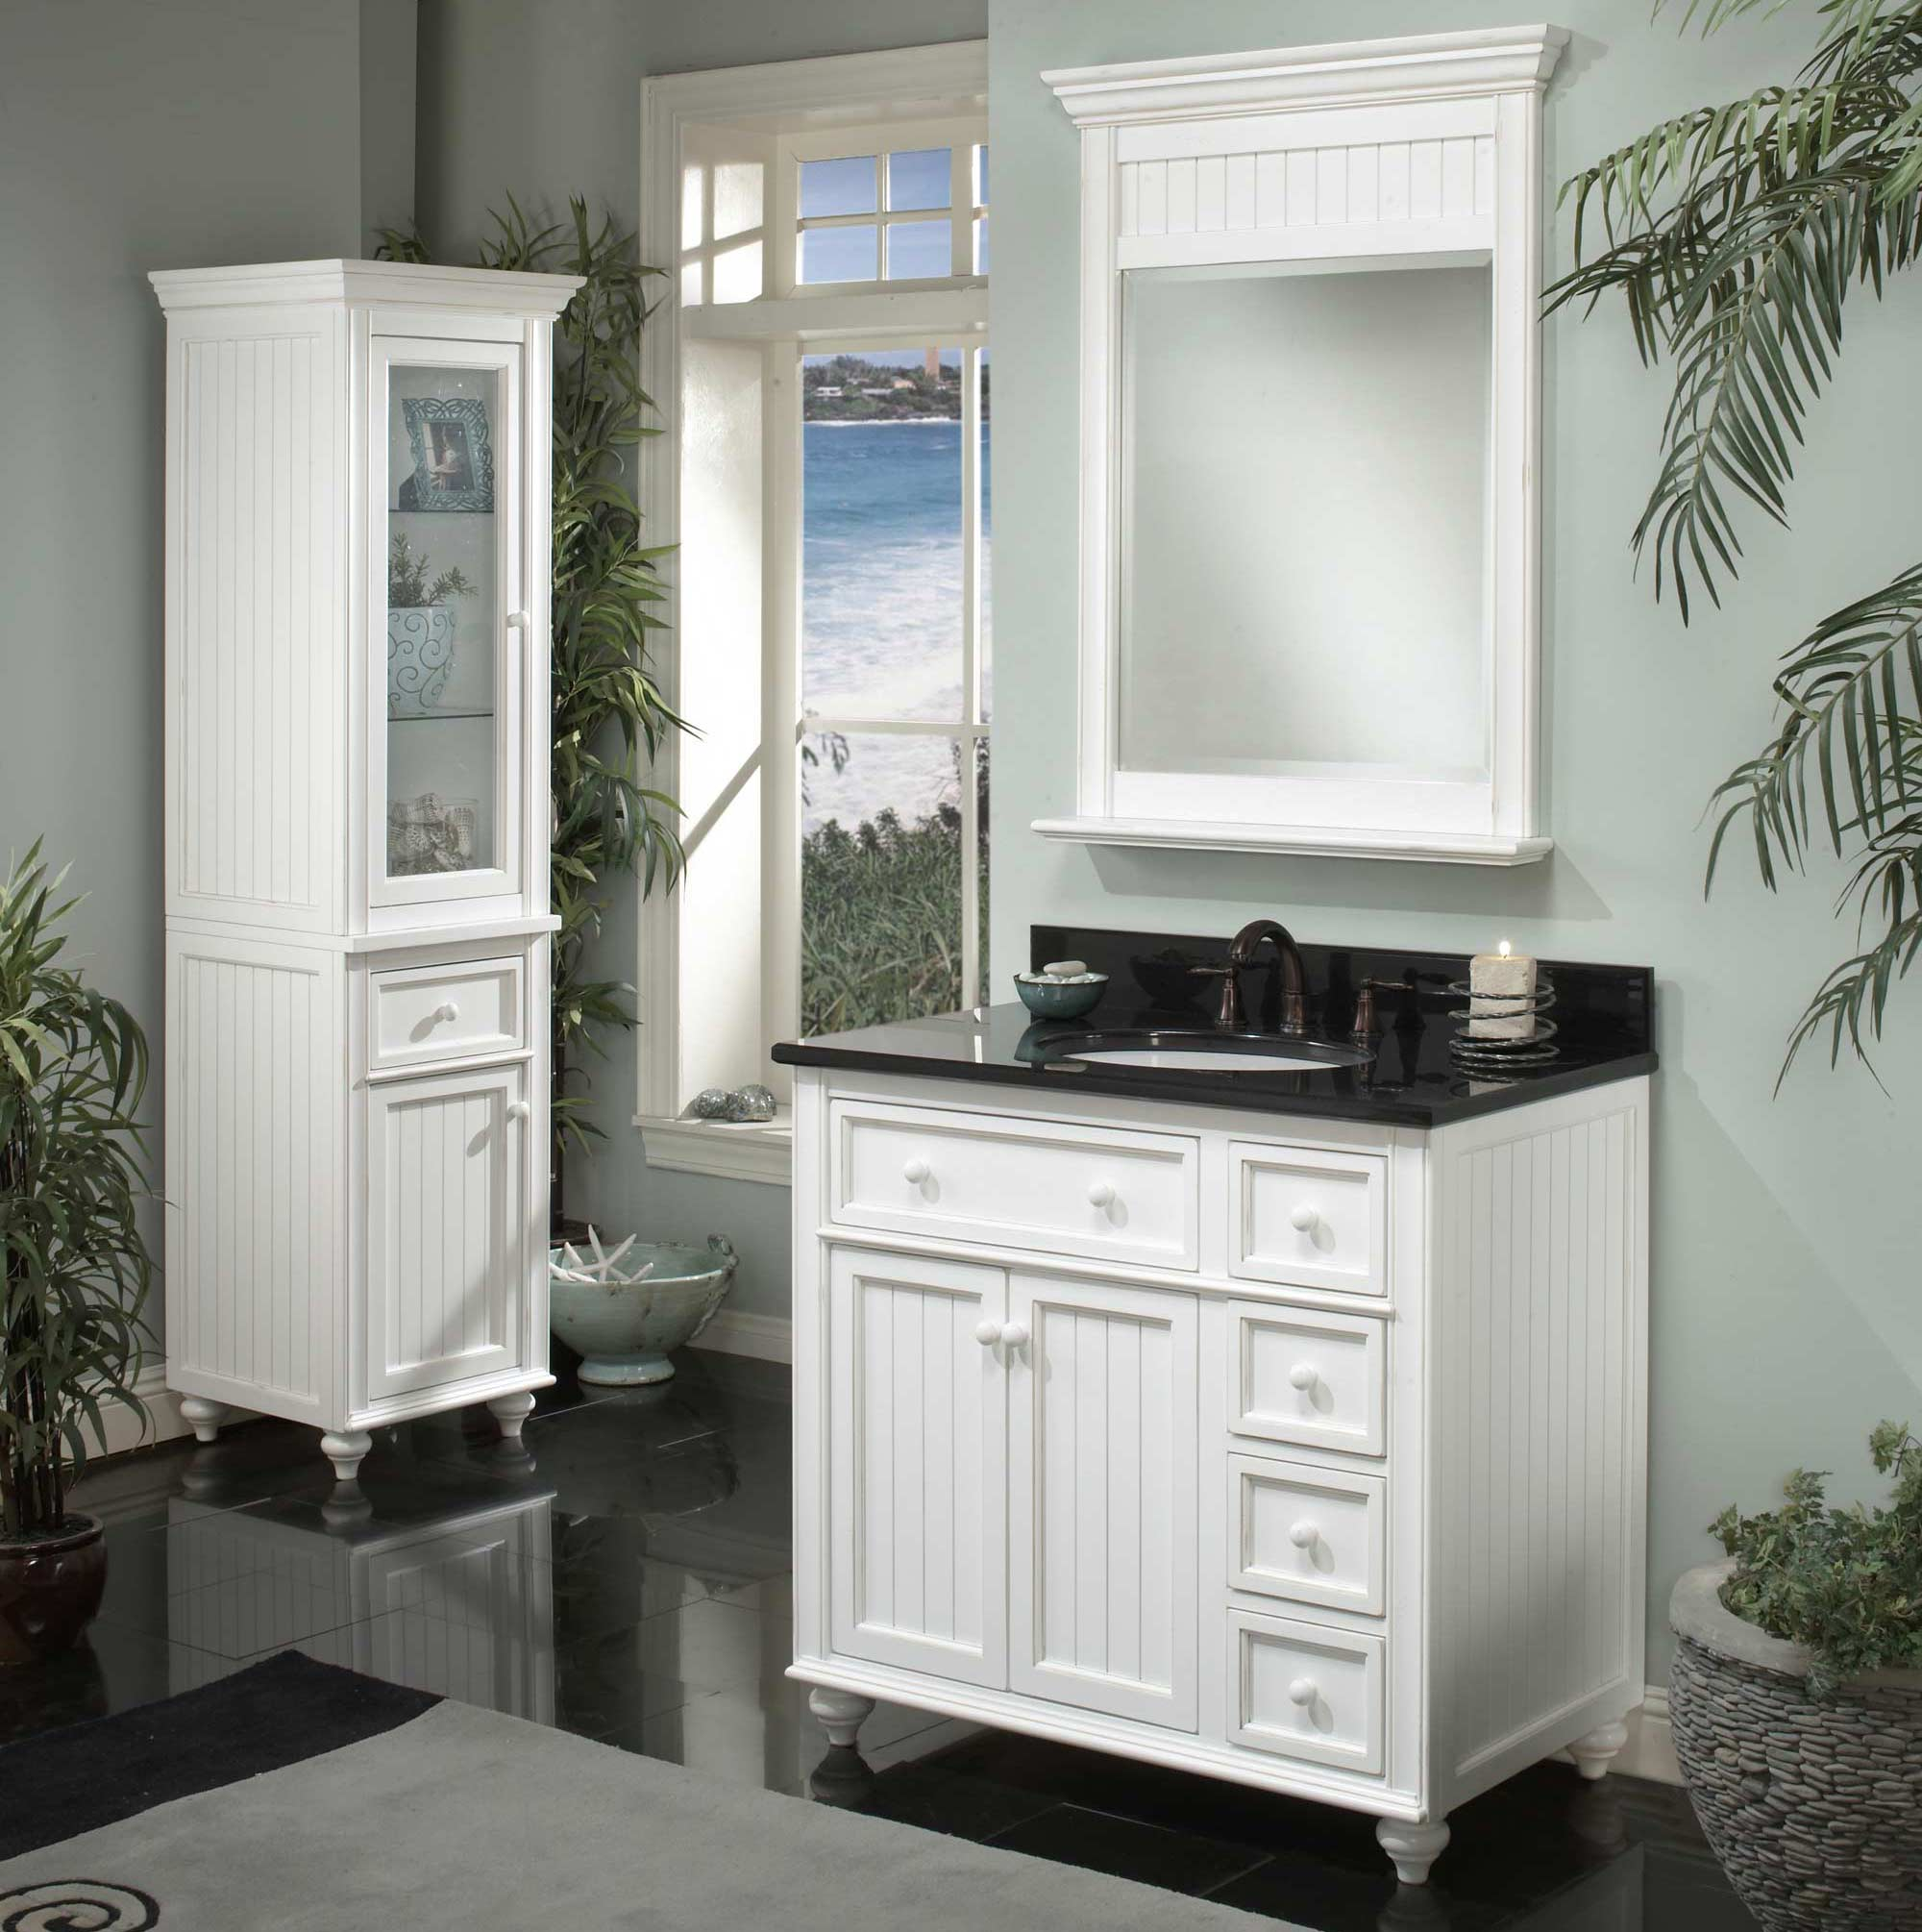 sagehill 39 s cottage retreat bathroom vanity with a black granite top - Bathroom Cabinet Ideas Design